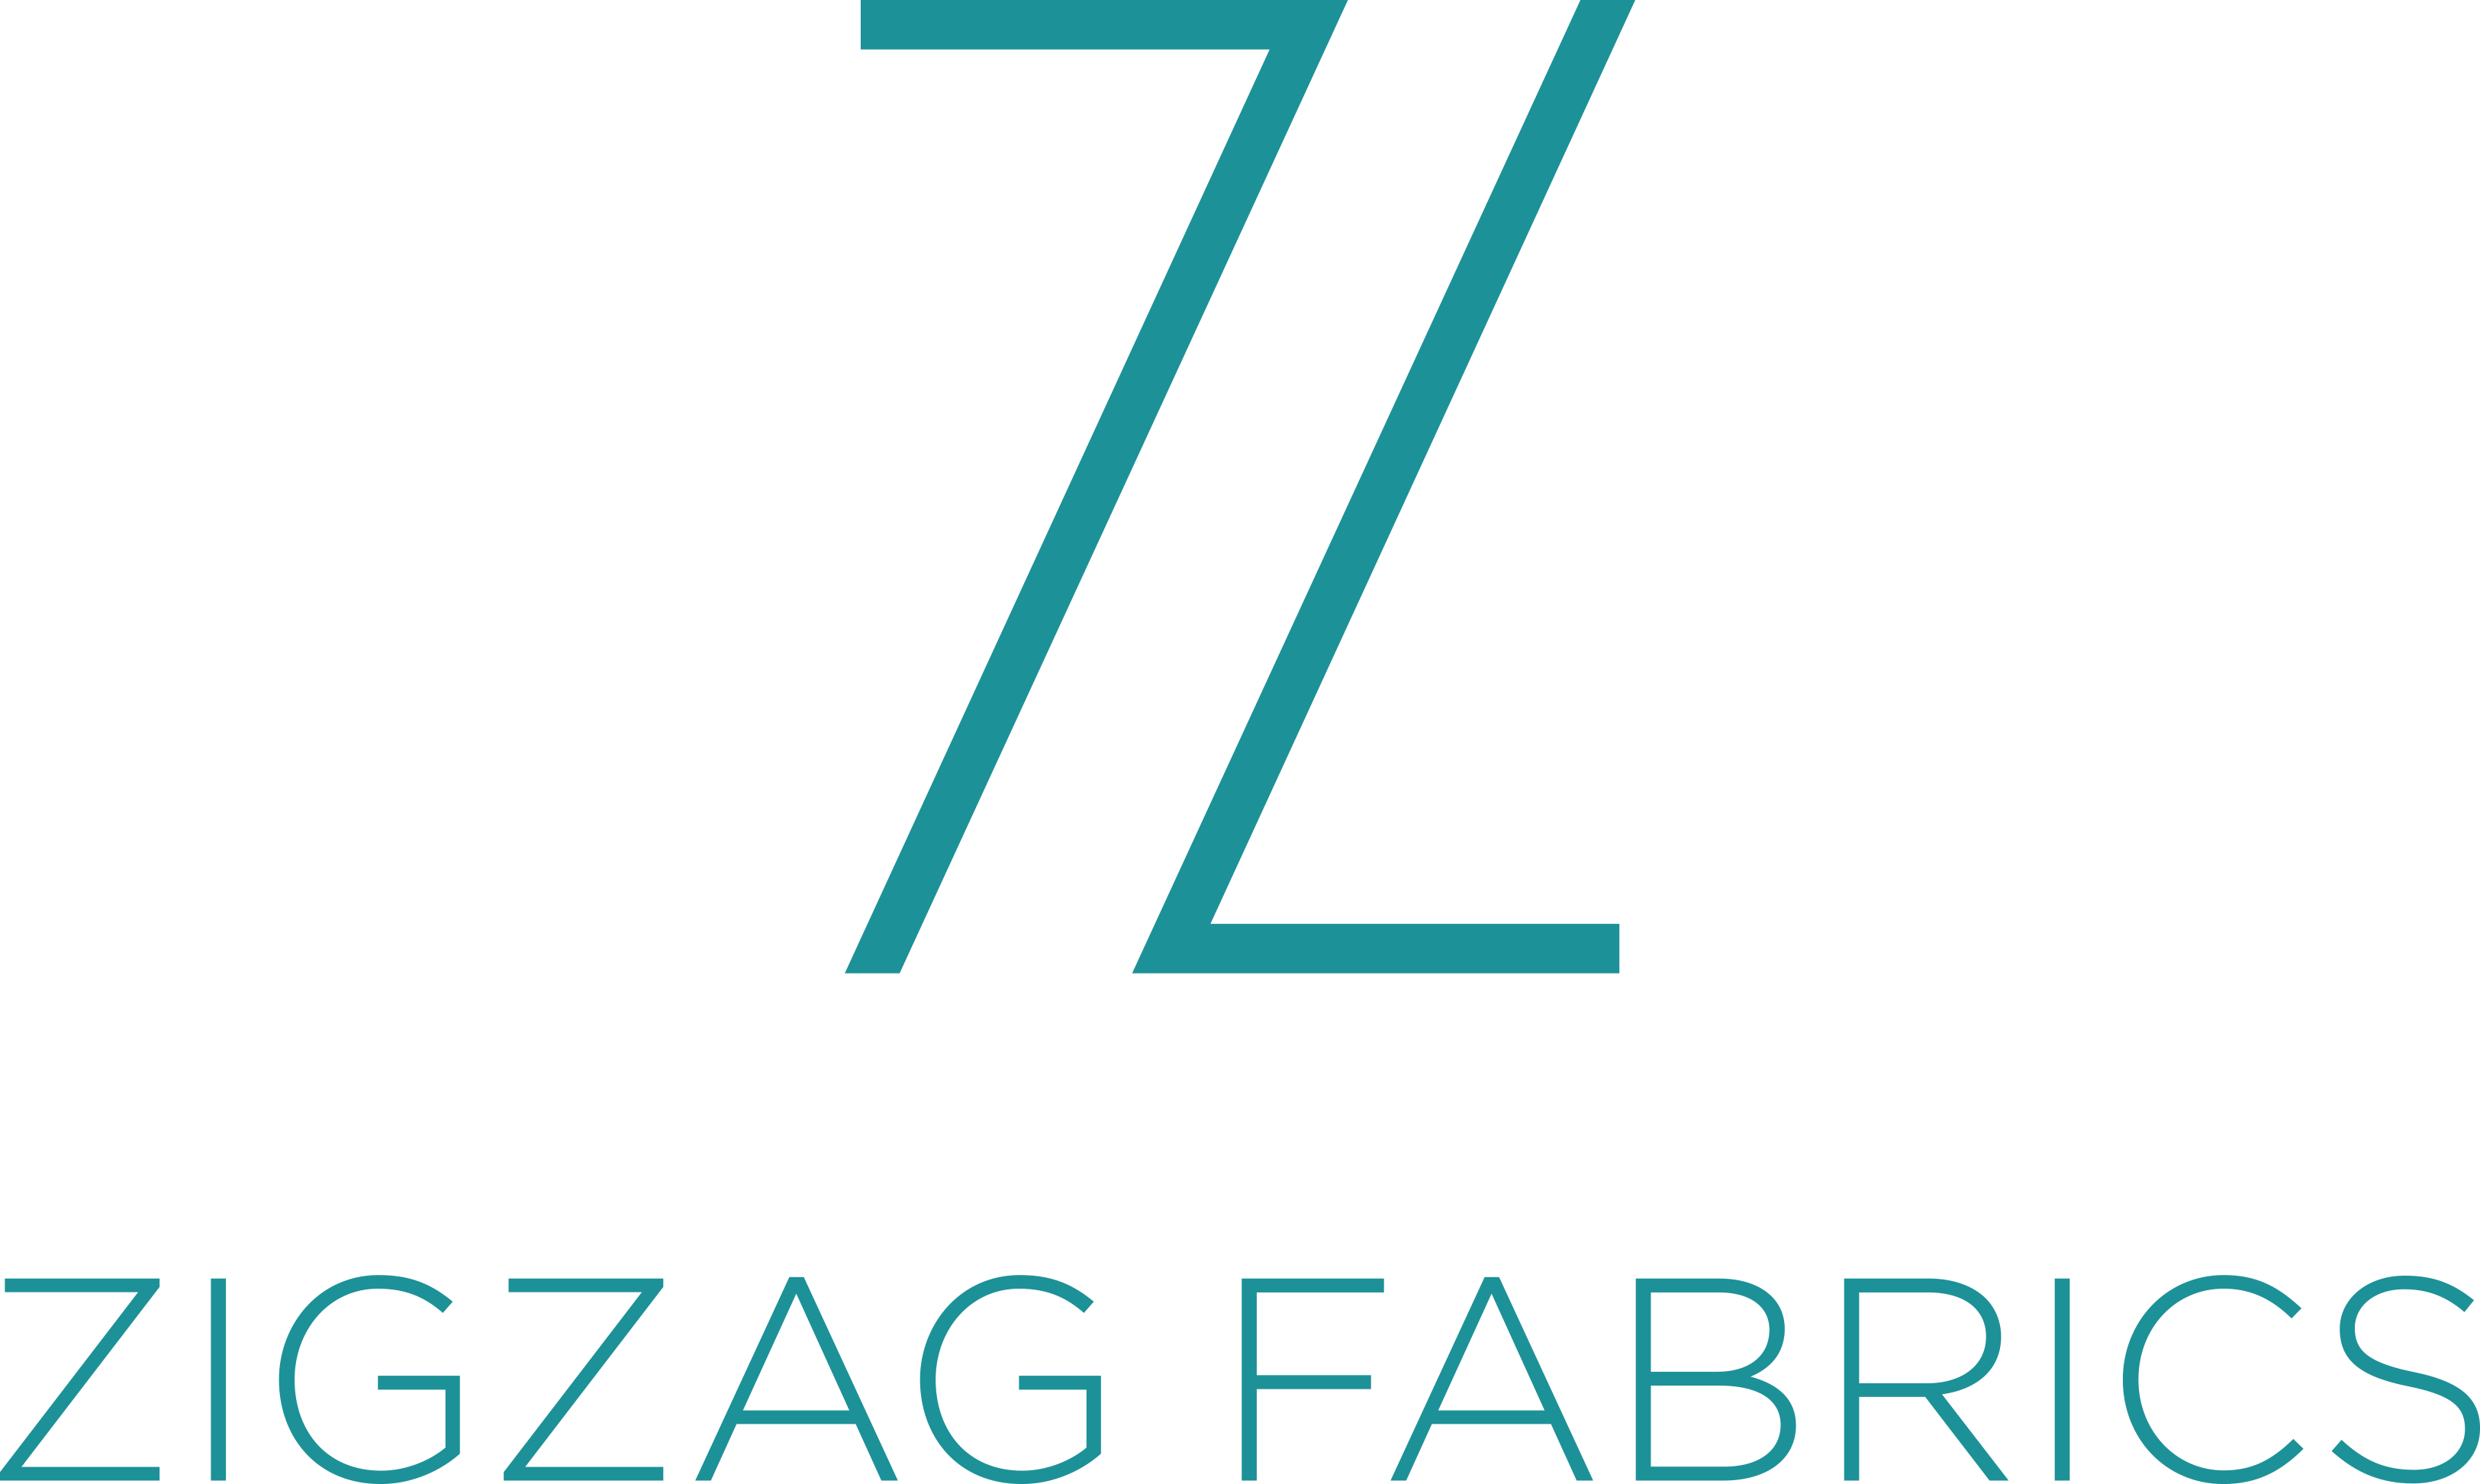 Zigzag Fabrics